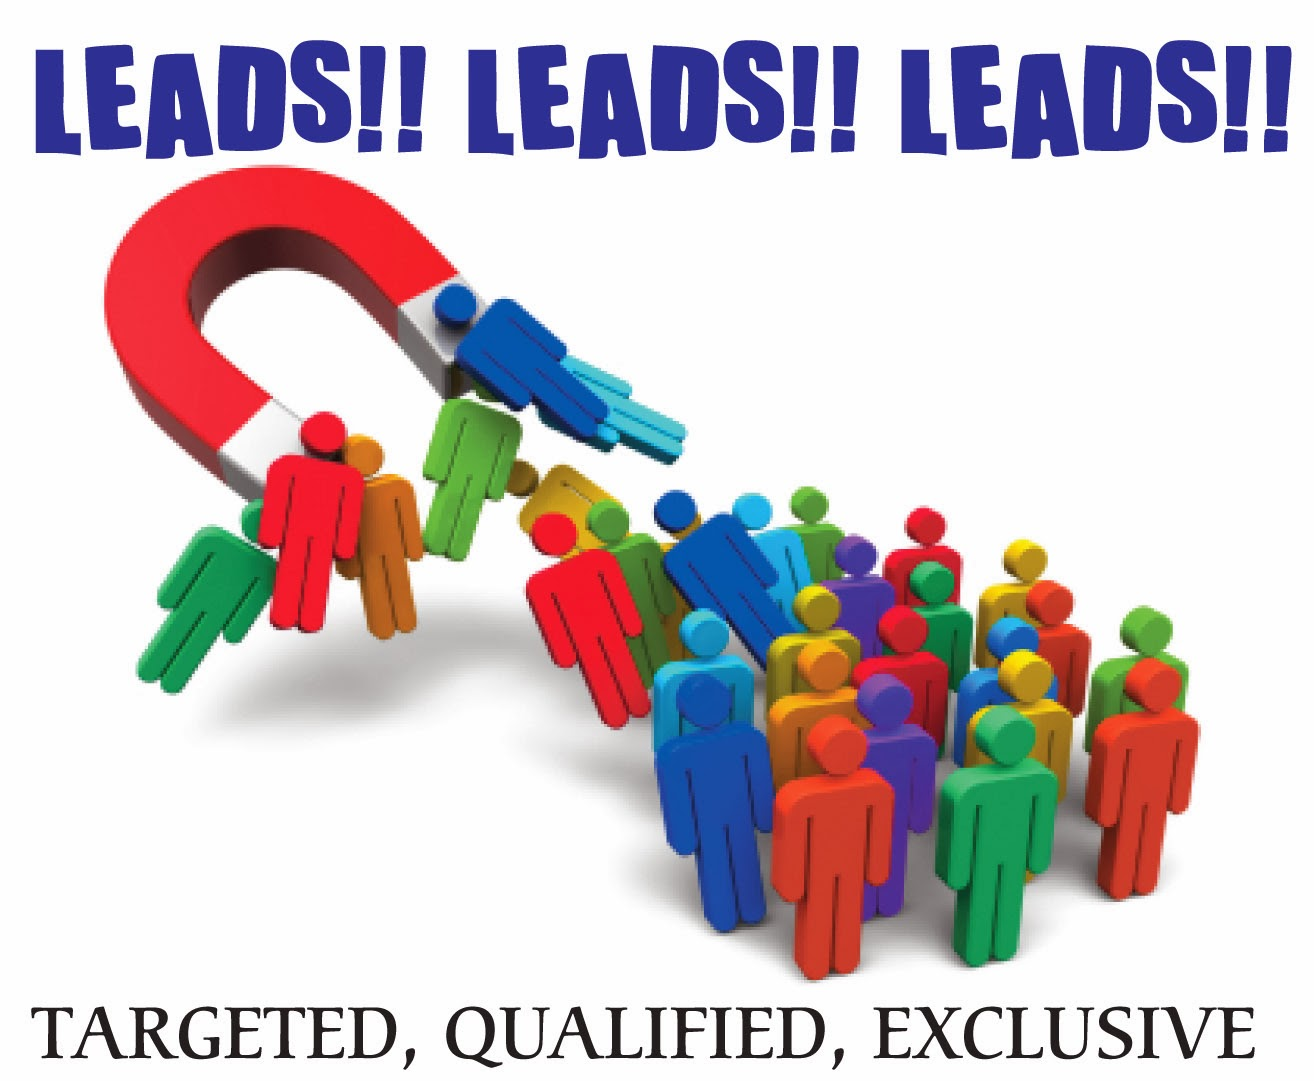 HIGHLY TARGETED LEADS